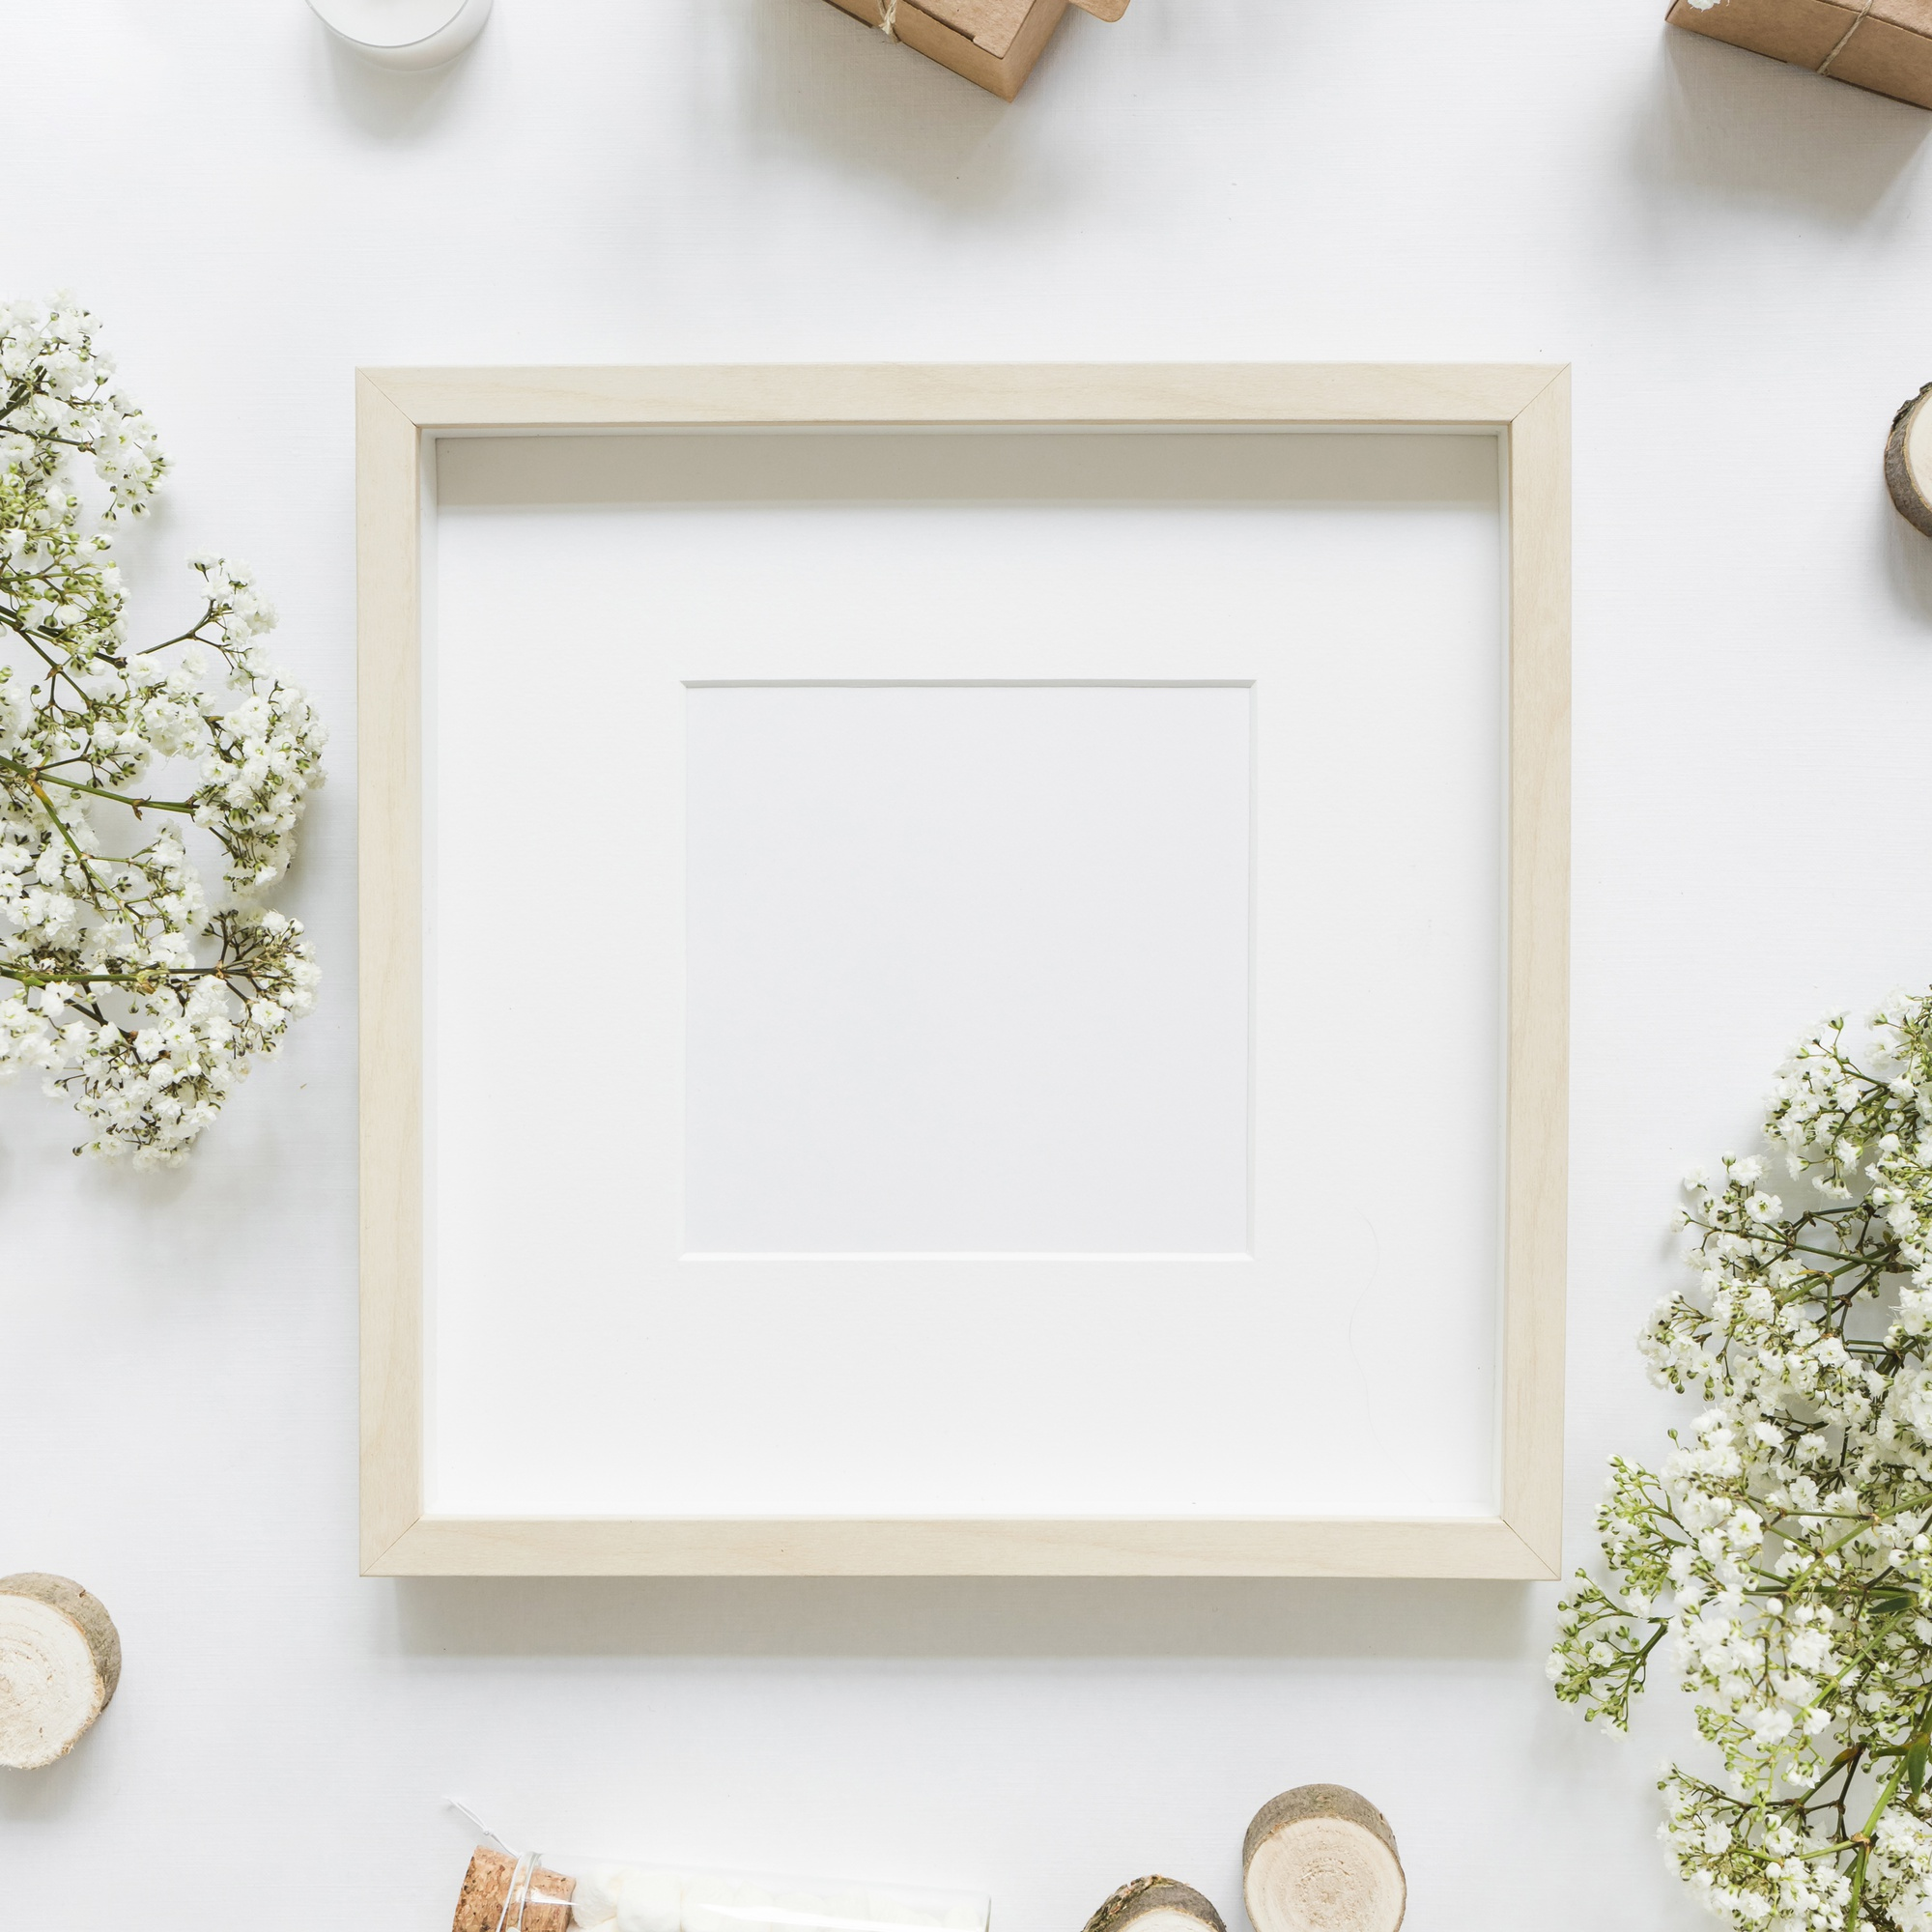 An empty white frame surrounded with flowers and gift boxes